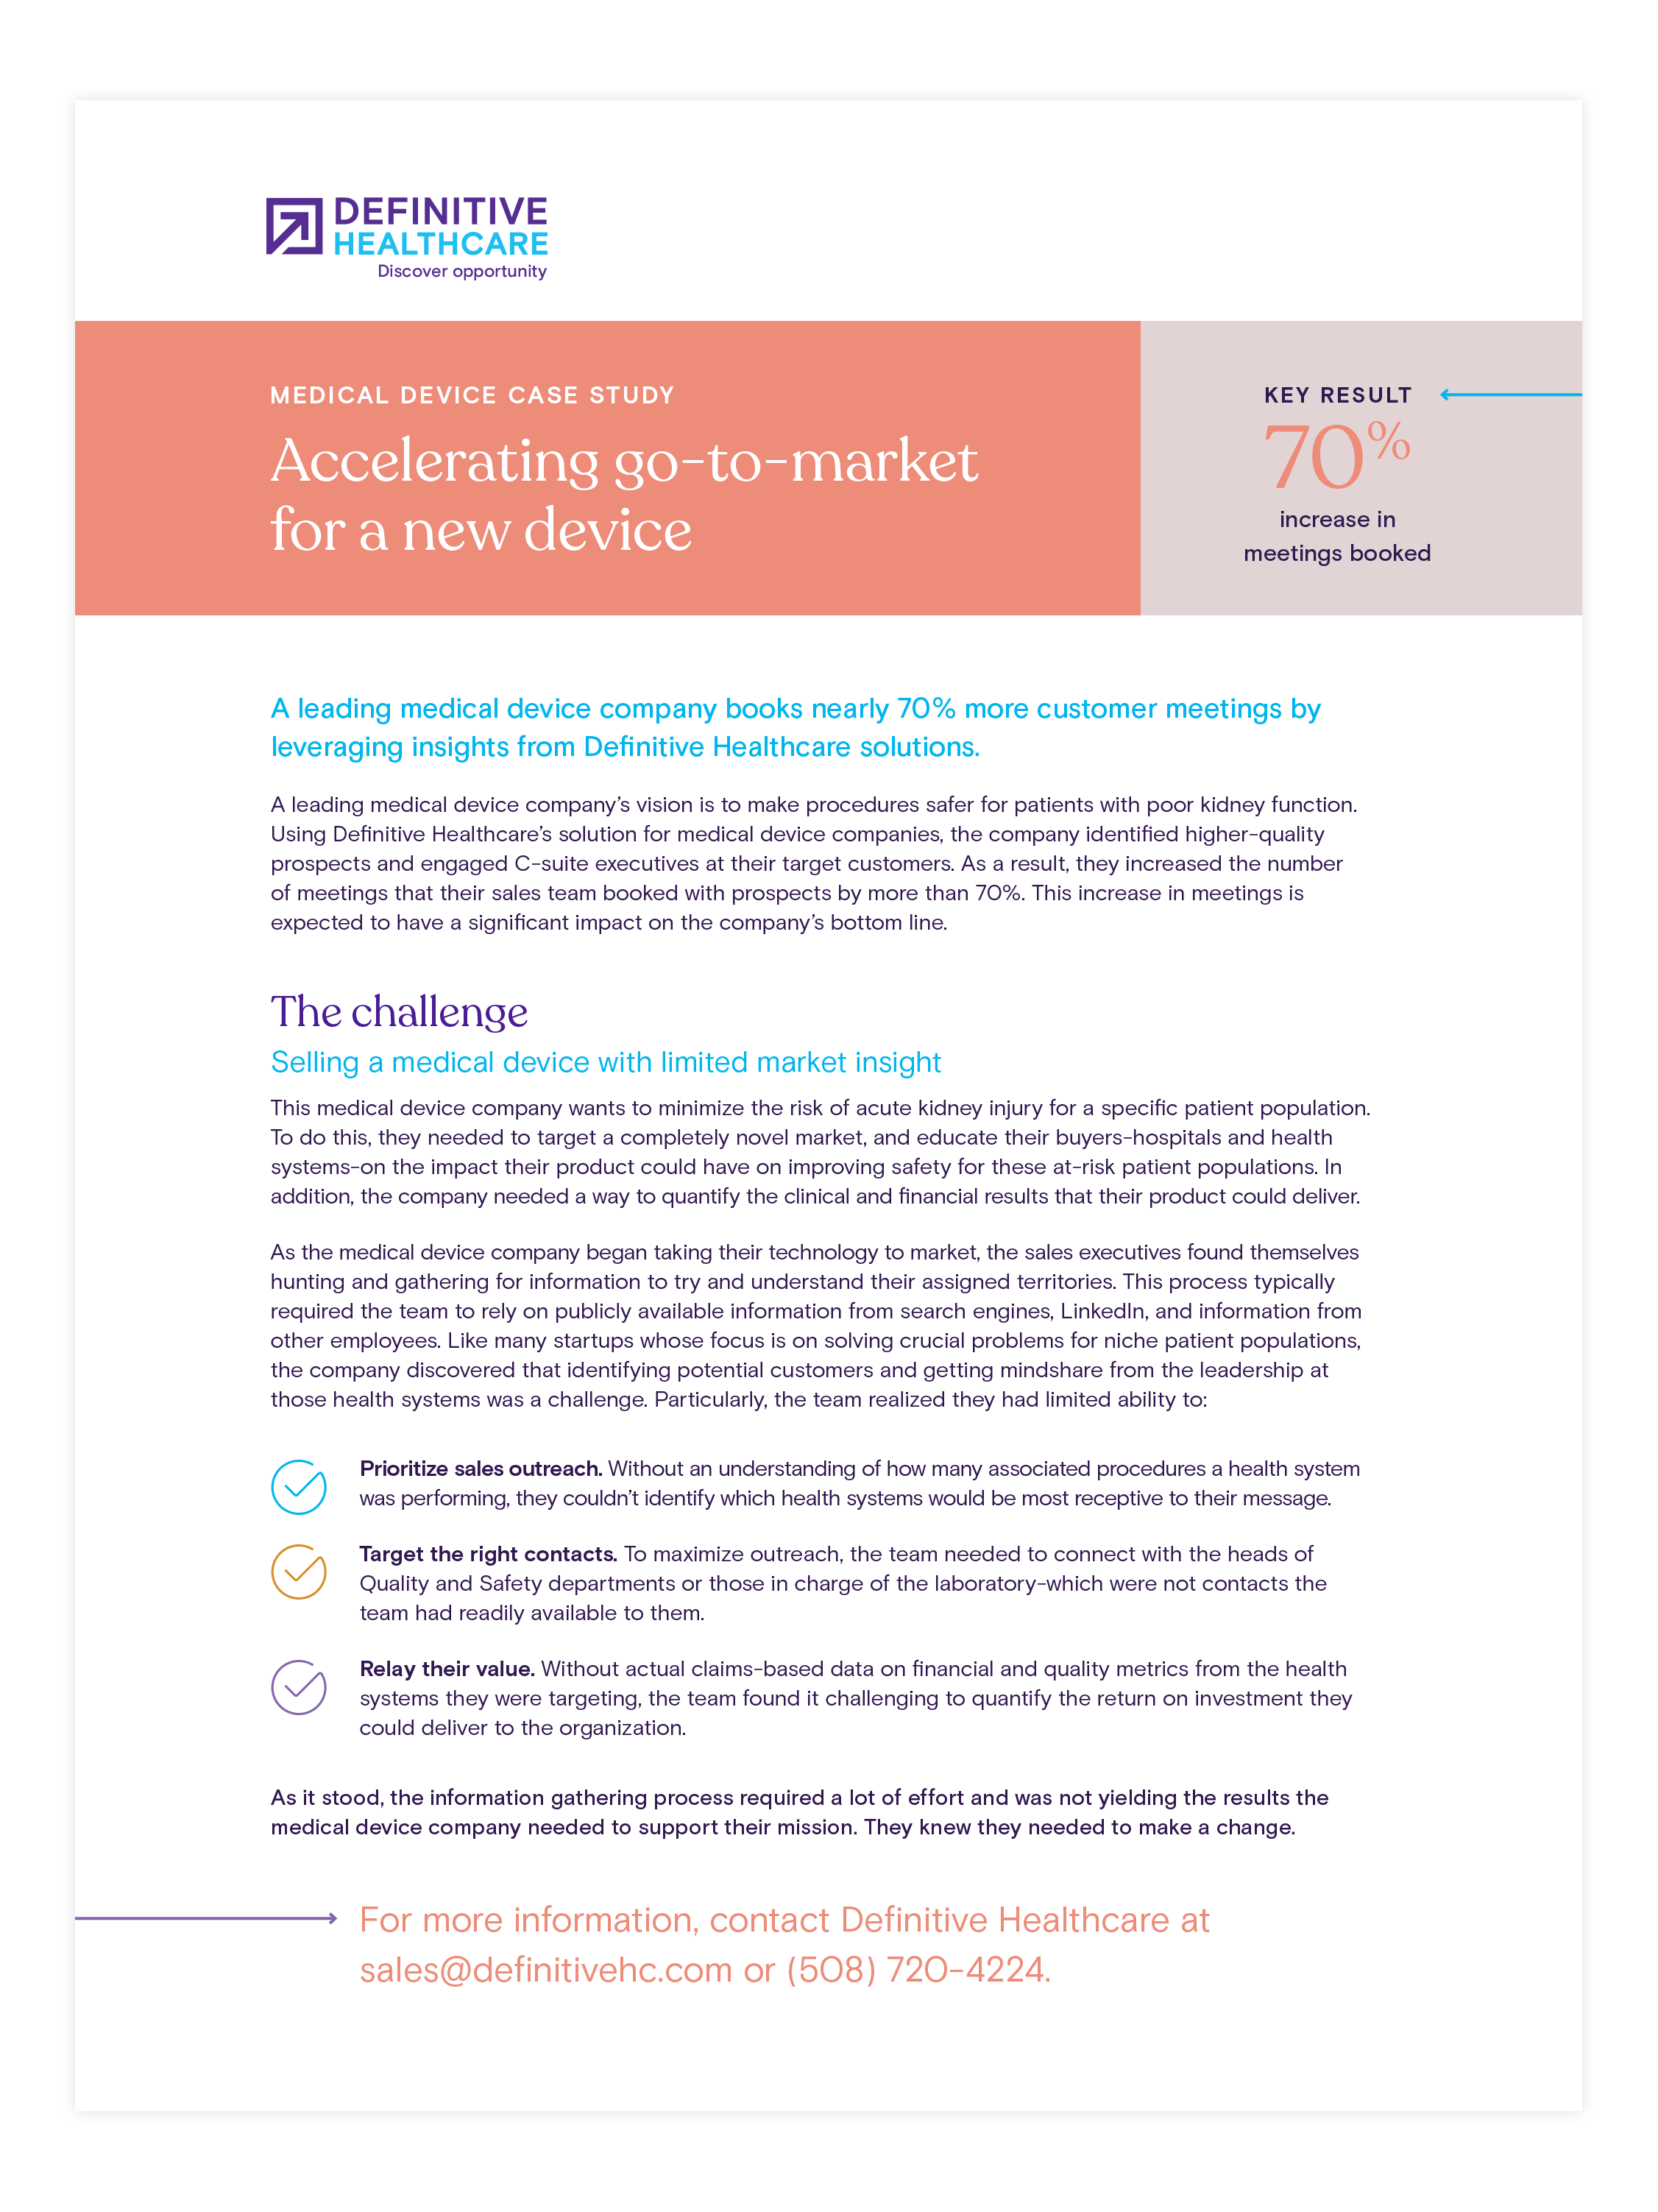 Case study - Accelerating go-to-market for a new device